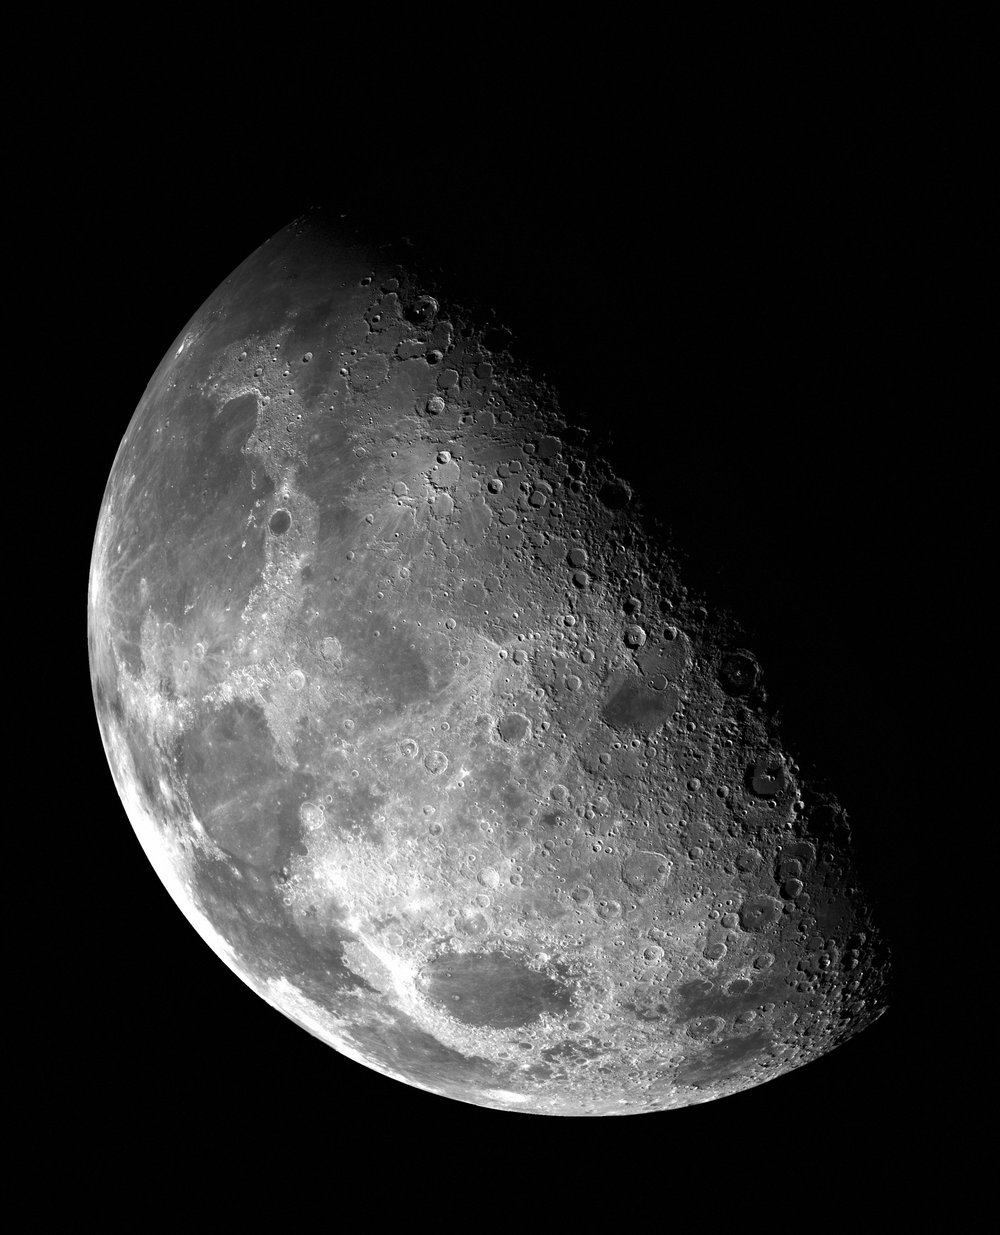 You can see craters from the Late Heavy Bombardment on the moon.